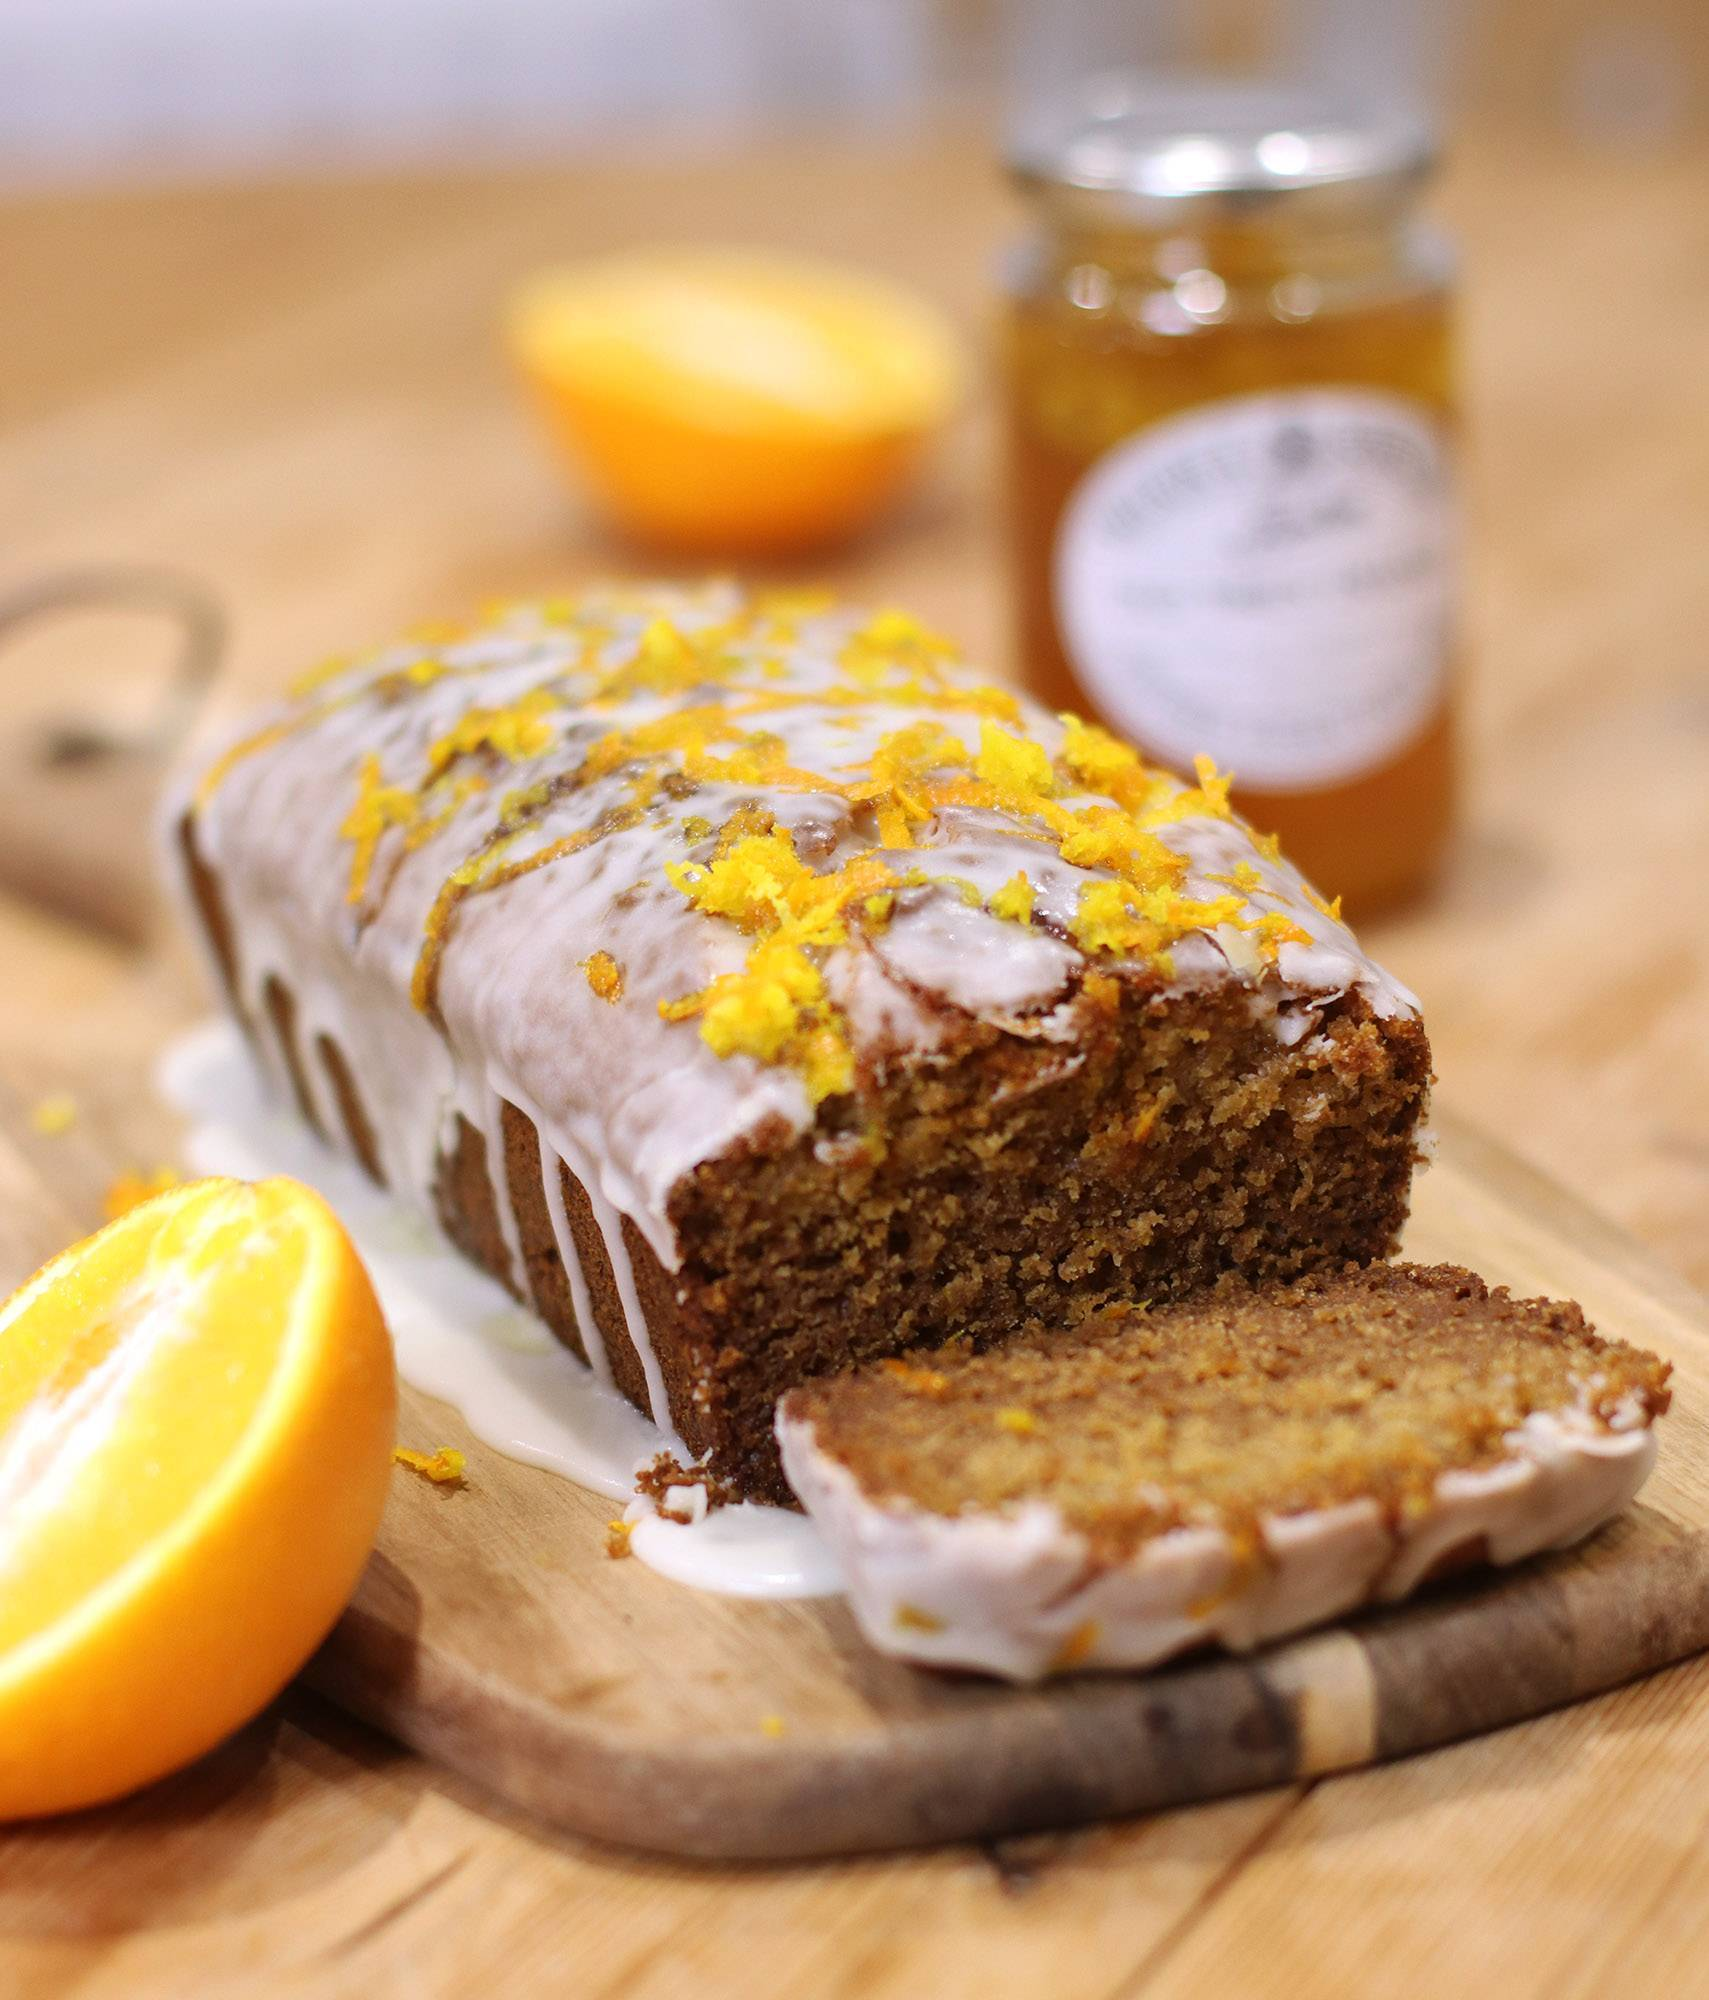 My Mighty Gluten Free Marmalade Loaf Cake Recipe (dairy free and low FODMAP)